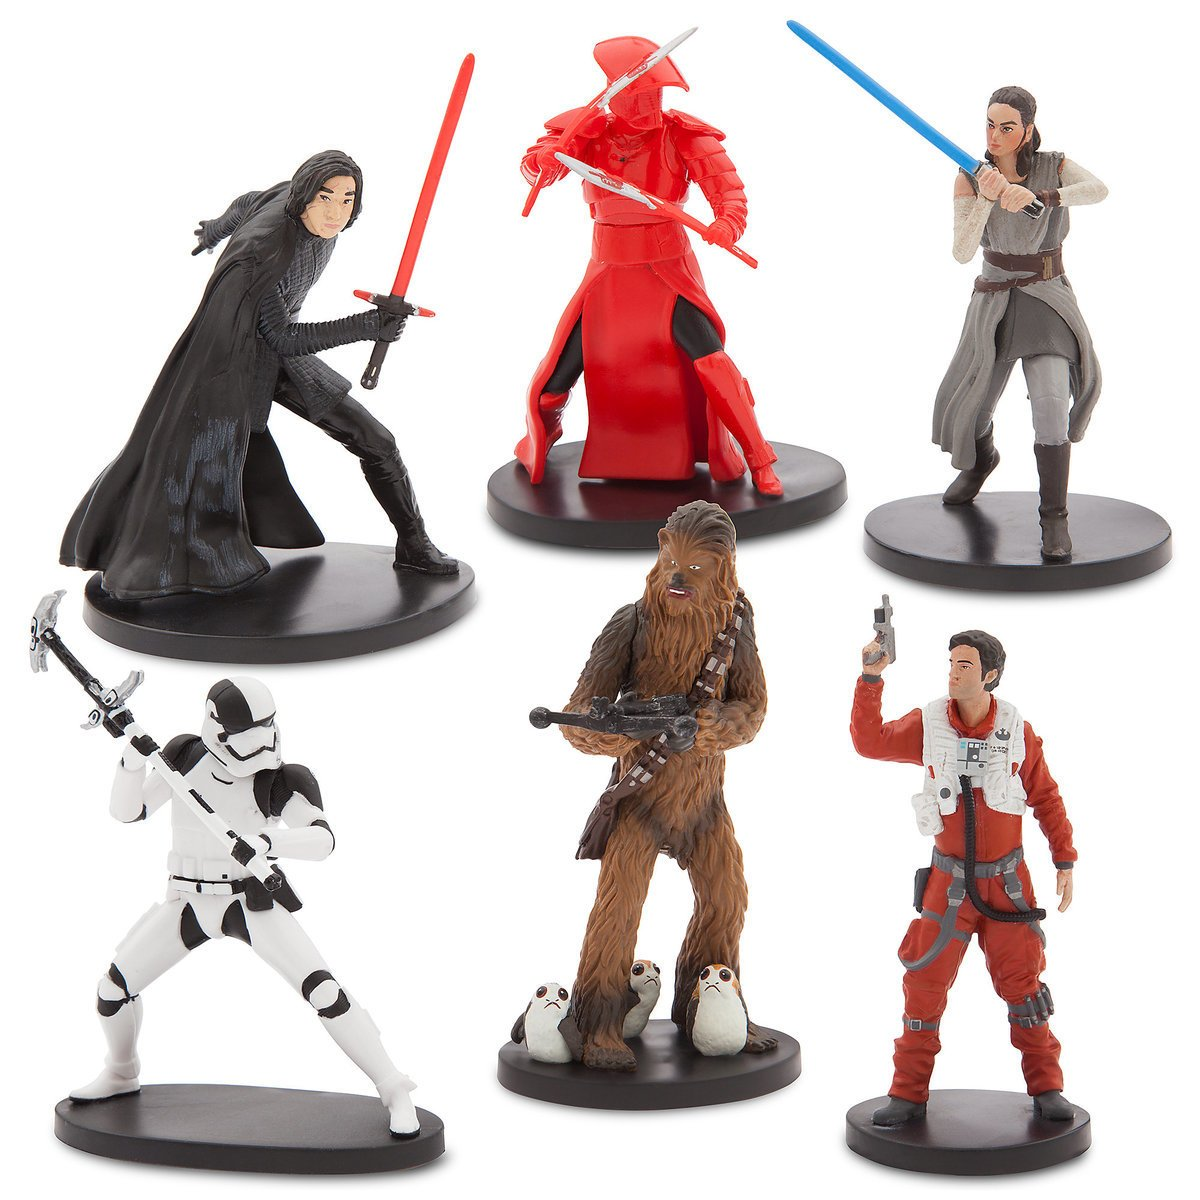 Star Wars The Last Jedi Set of 6 Figures